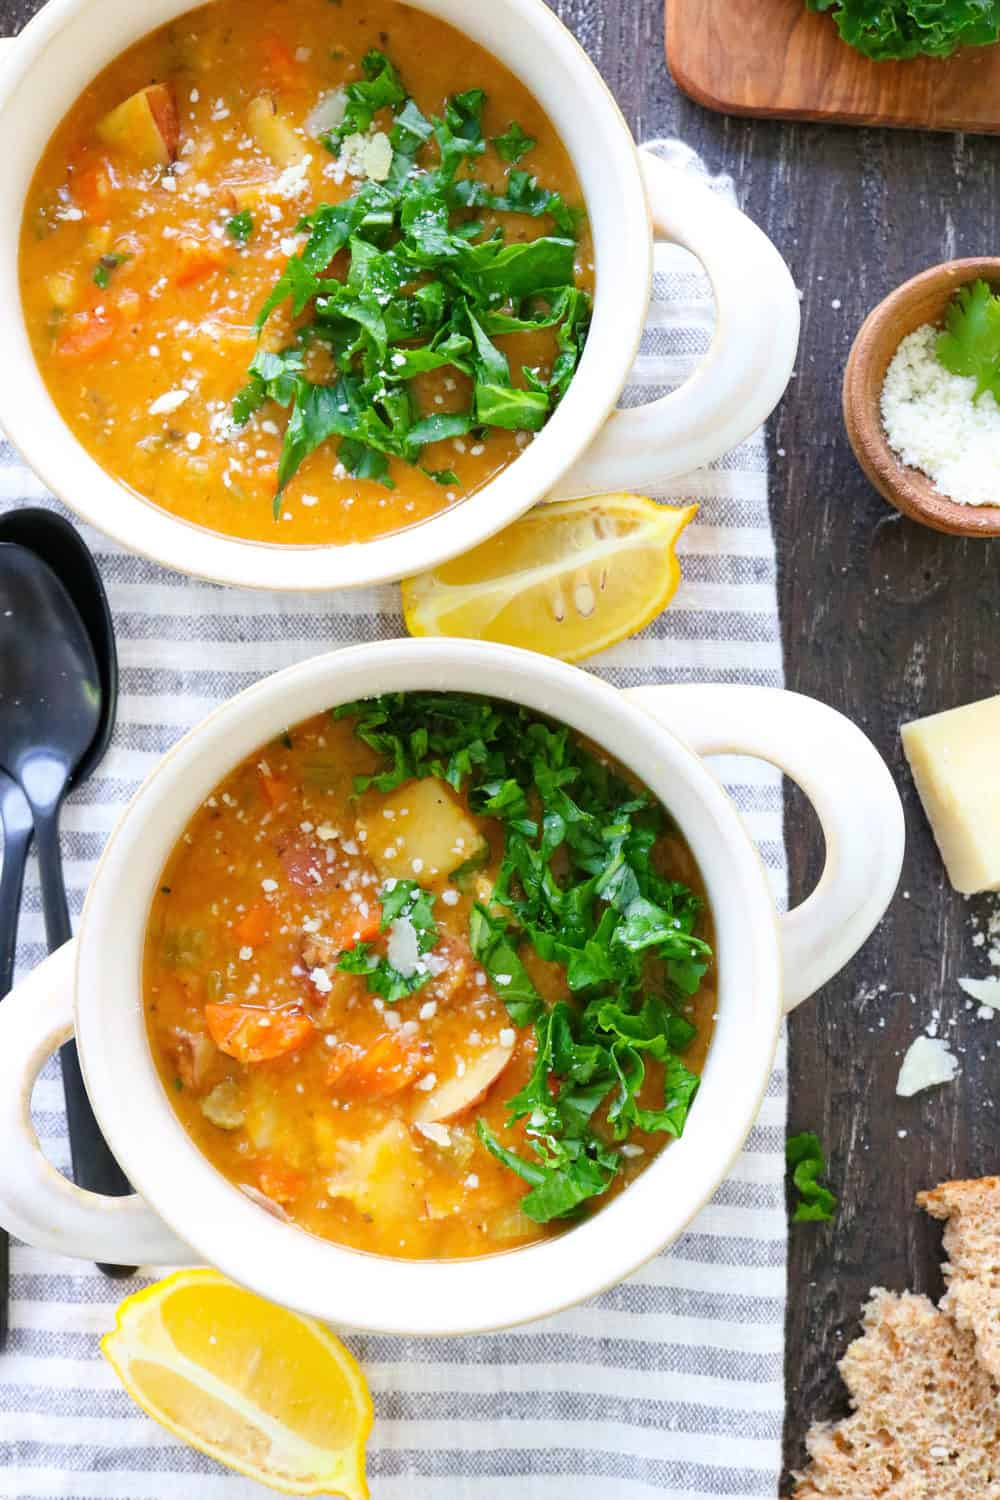 two bowls of lentil soup with kale and lemons next to them